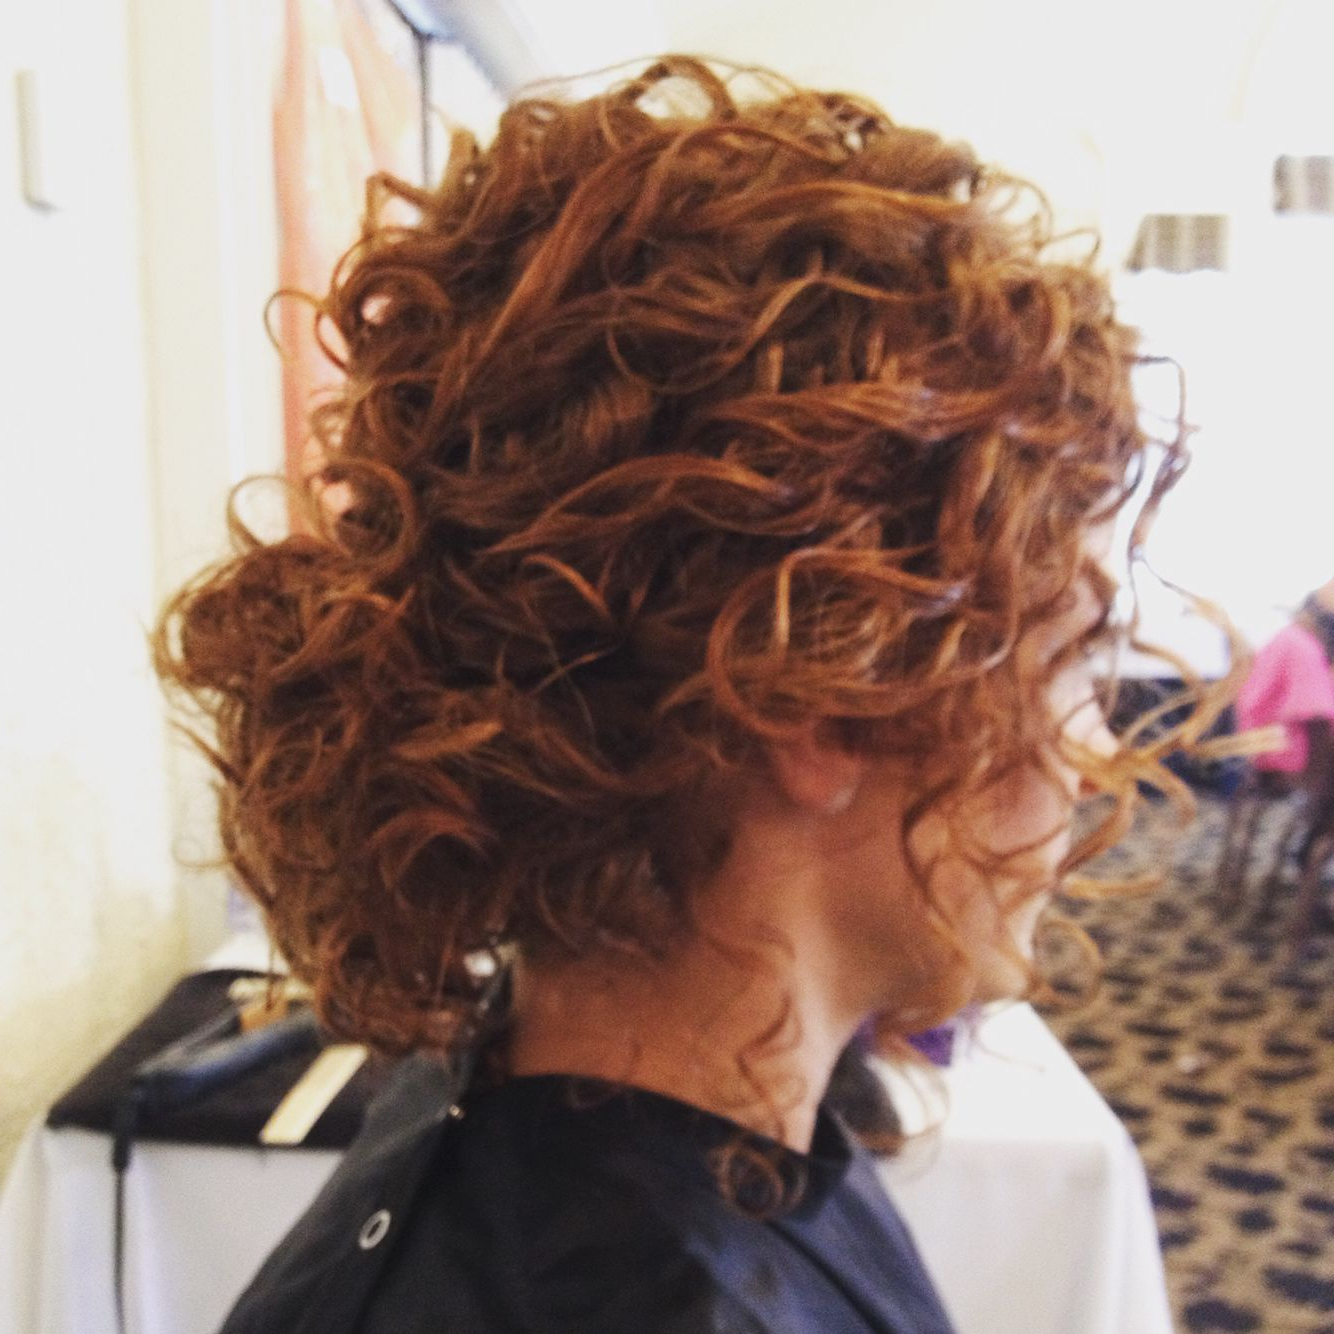 Naturally Curly Hair Low Bun Updo | Hair In 2018 | Pinterest | Curly Intended For Short Messy Curly Hairstyles (View 7 of 20)